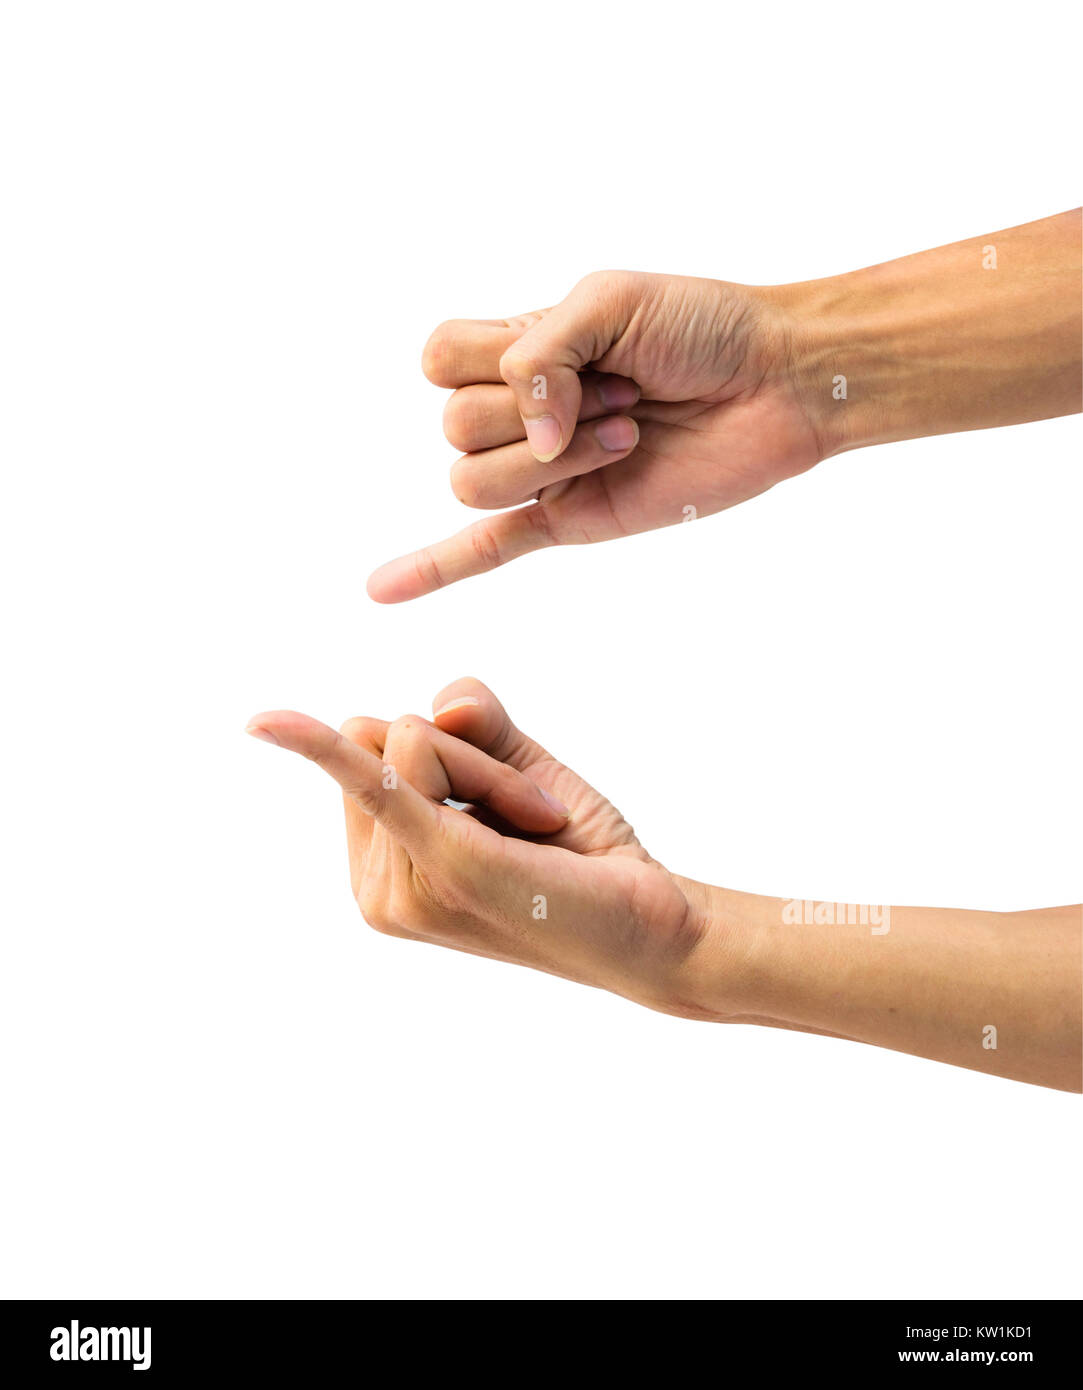 Hand showing  gesture sign, symbol of promise isolated on white background with clipping path. - Stock Image